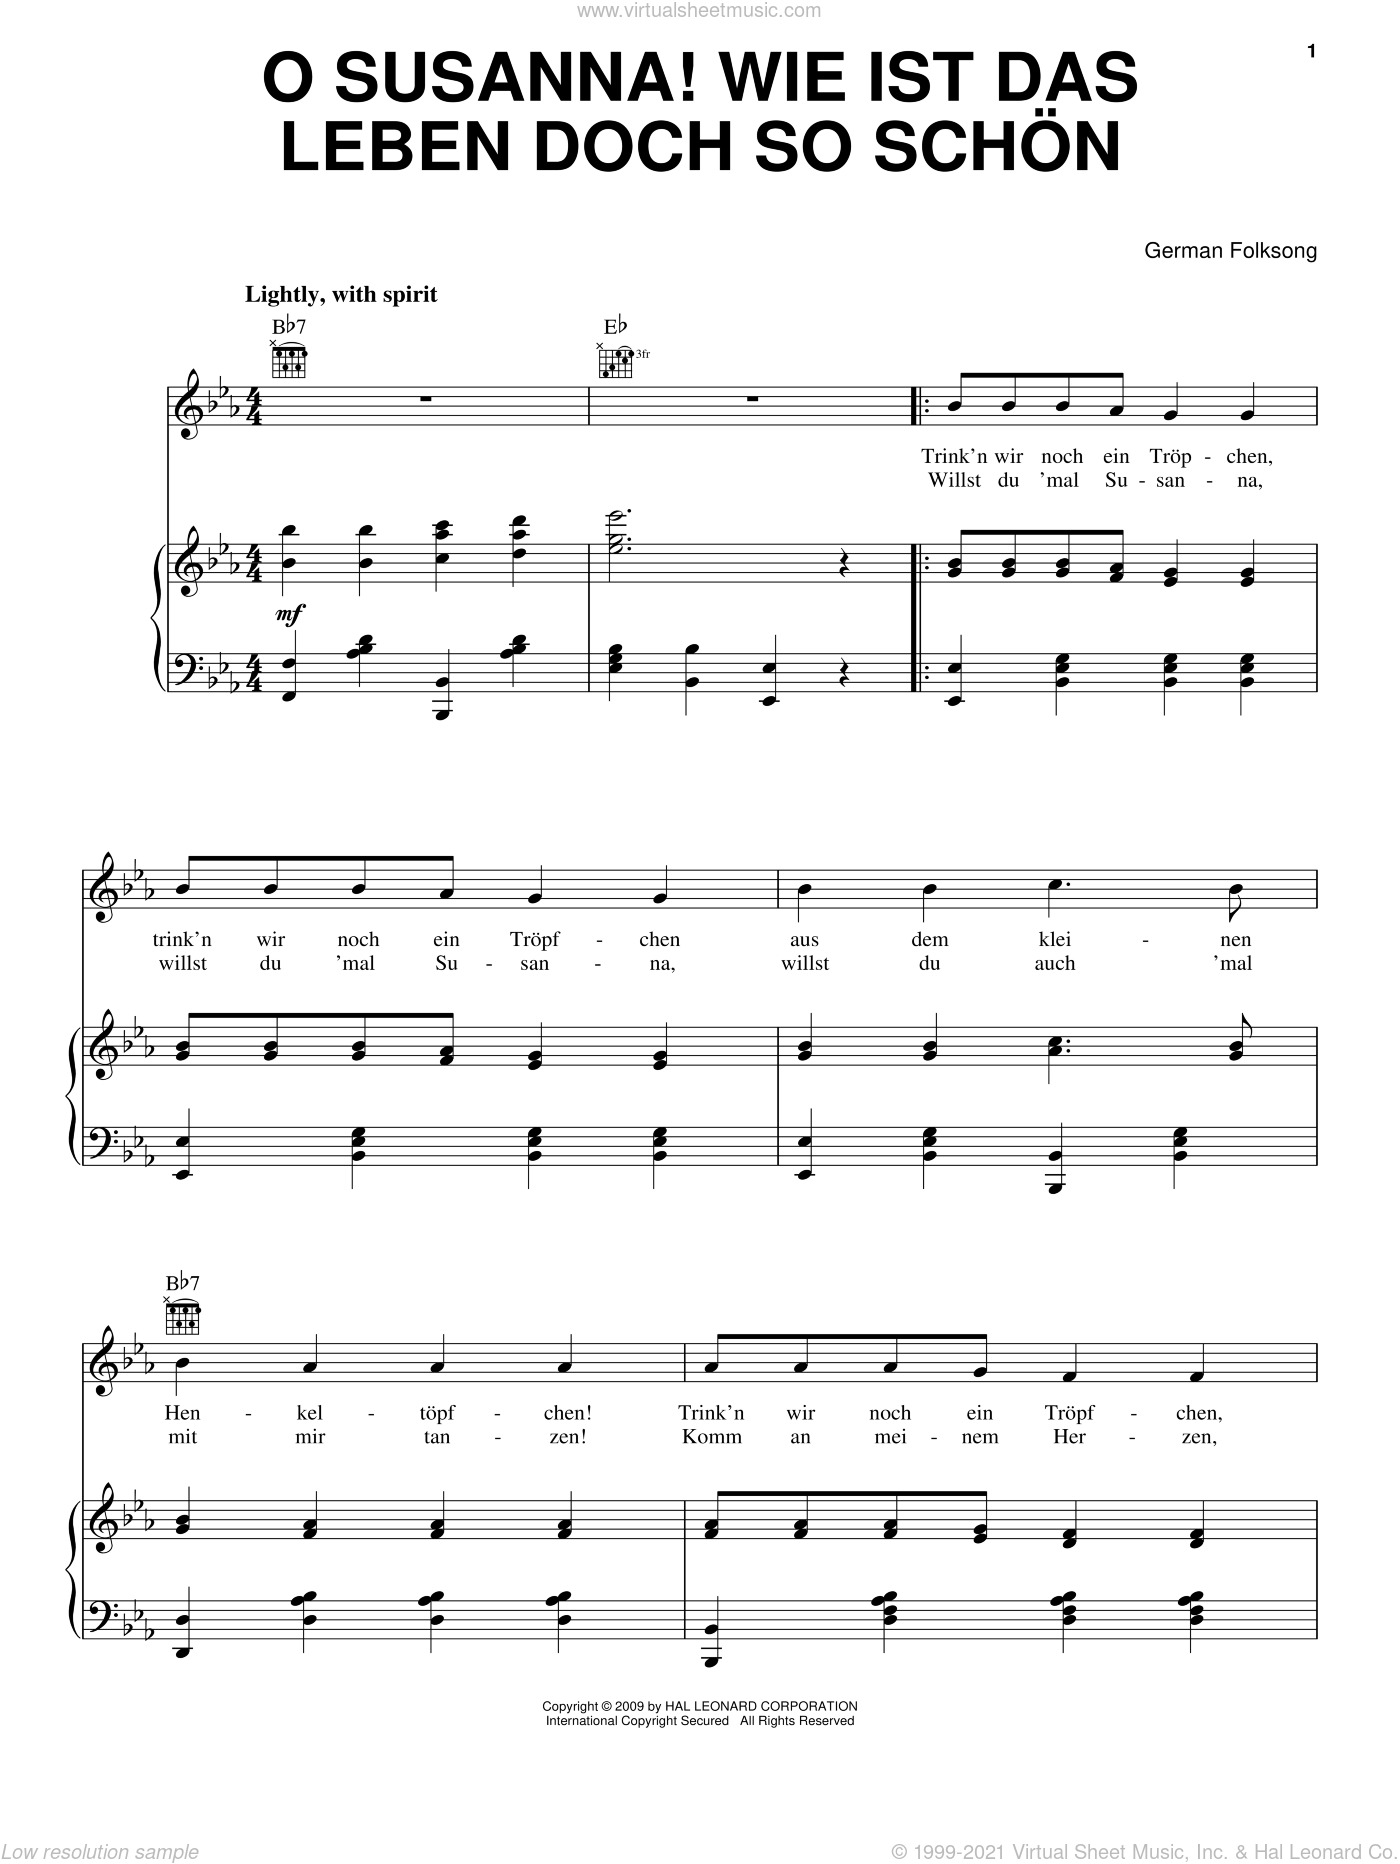 O Susanna! Wie Ist Das Leben So Schon sheet music for voice, piano or guitar, intermediate voice, piano or guitar. Score Image Preview.